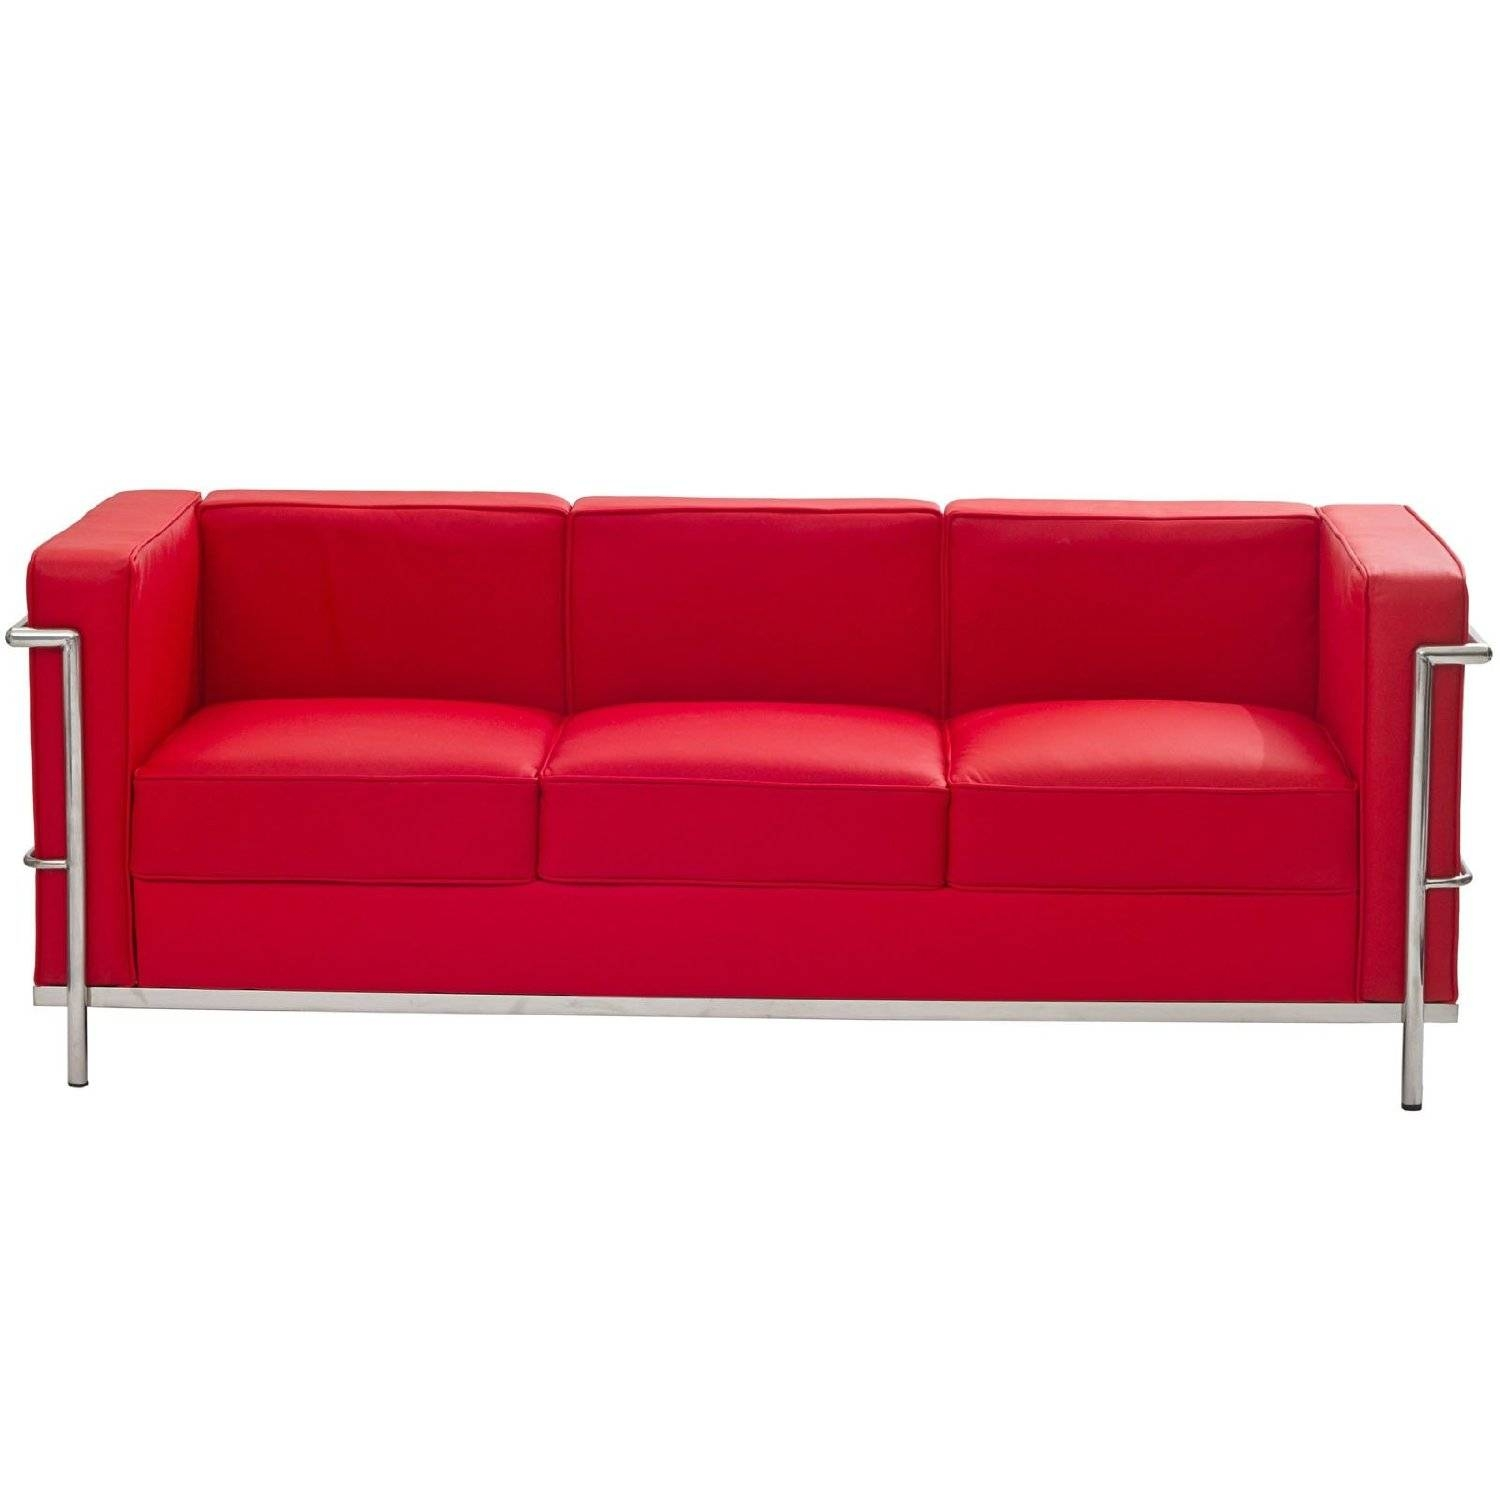 Sofa Pictures | Sofa with regard to Red Sofas And Chairs (Image 26 of 30)